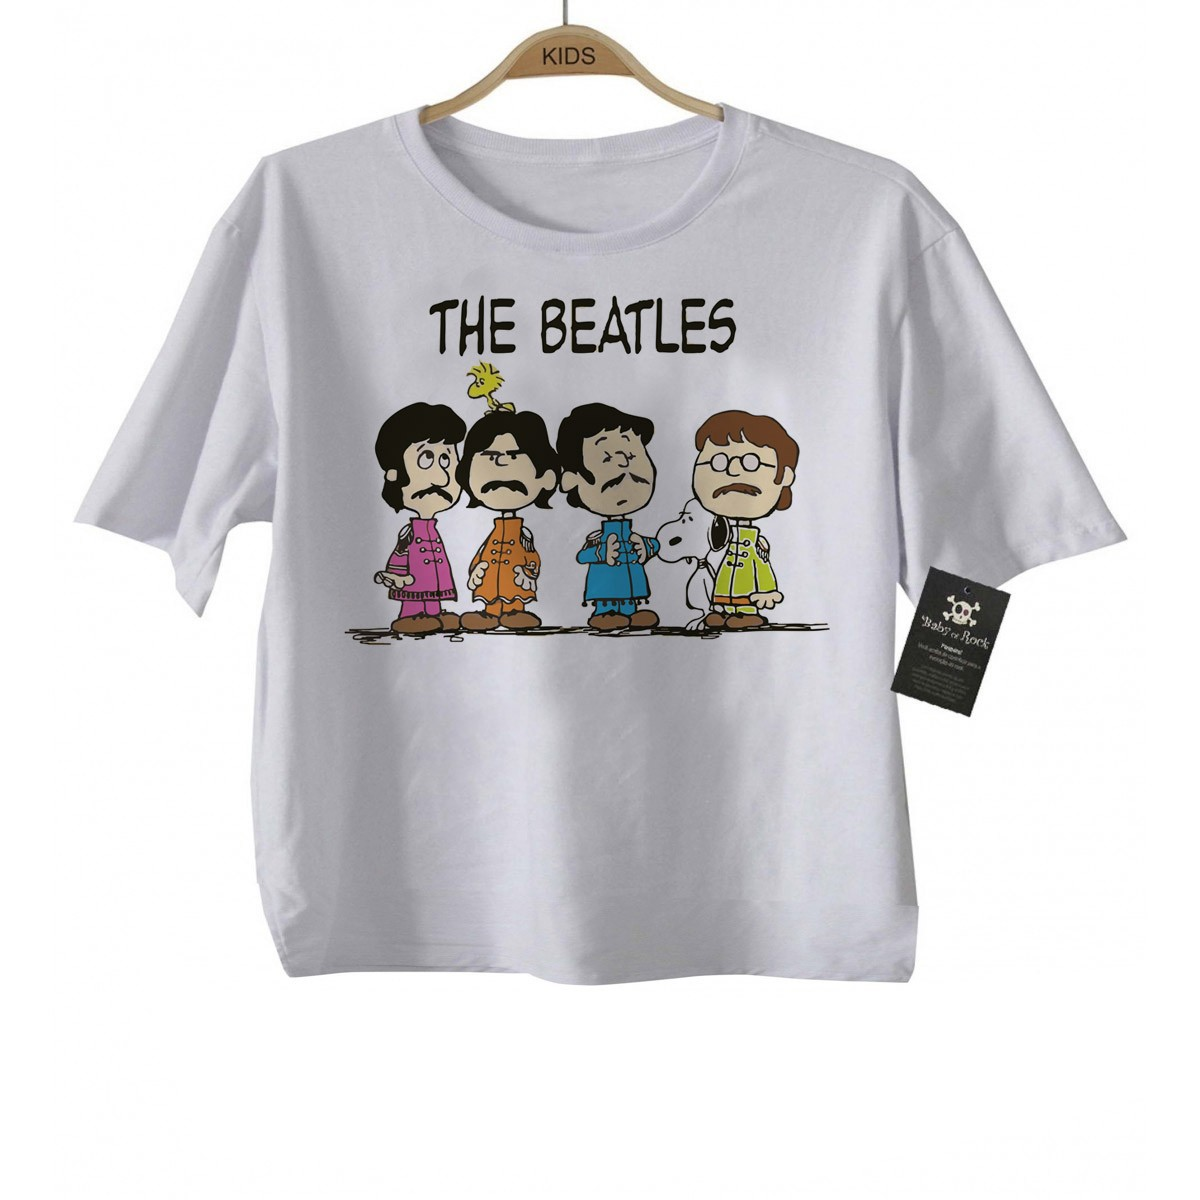 Camiseta  Infantil Beatles - Snoopy - White  - Baby Monster S/A